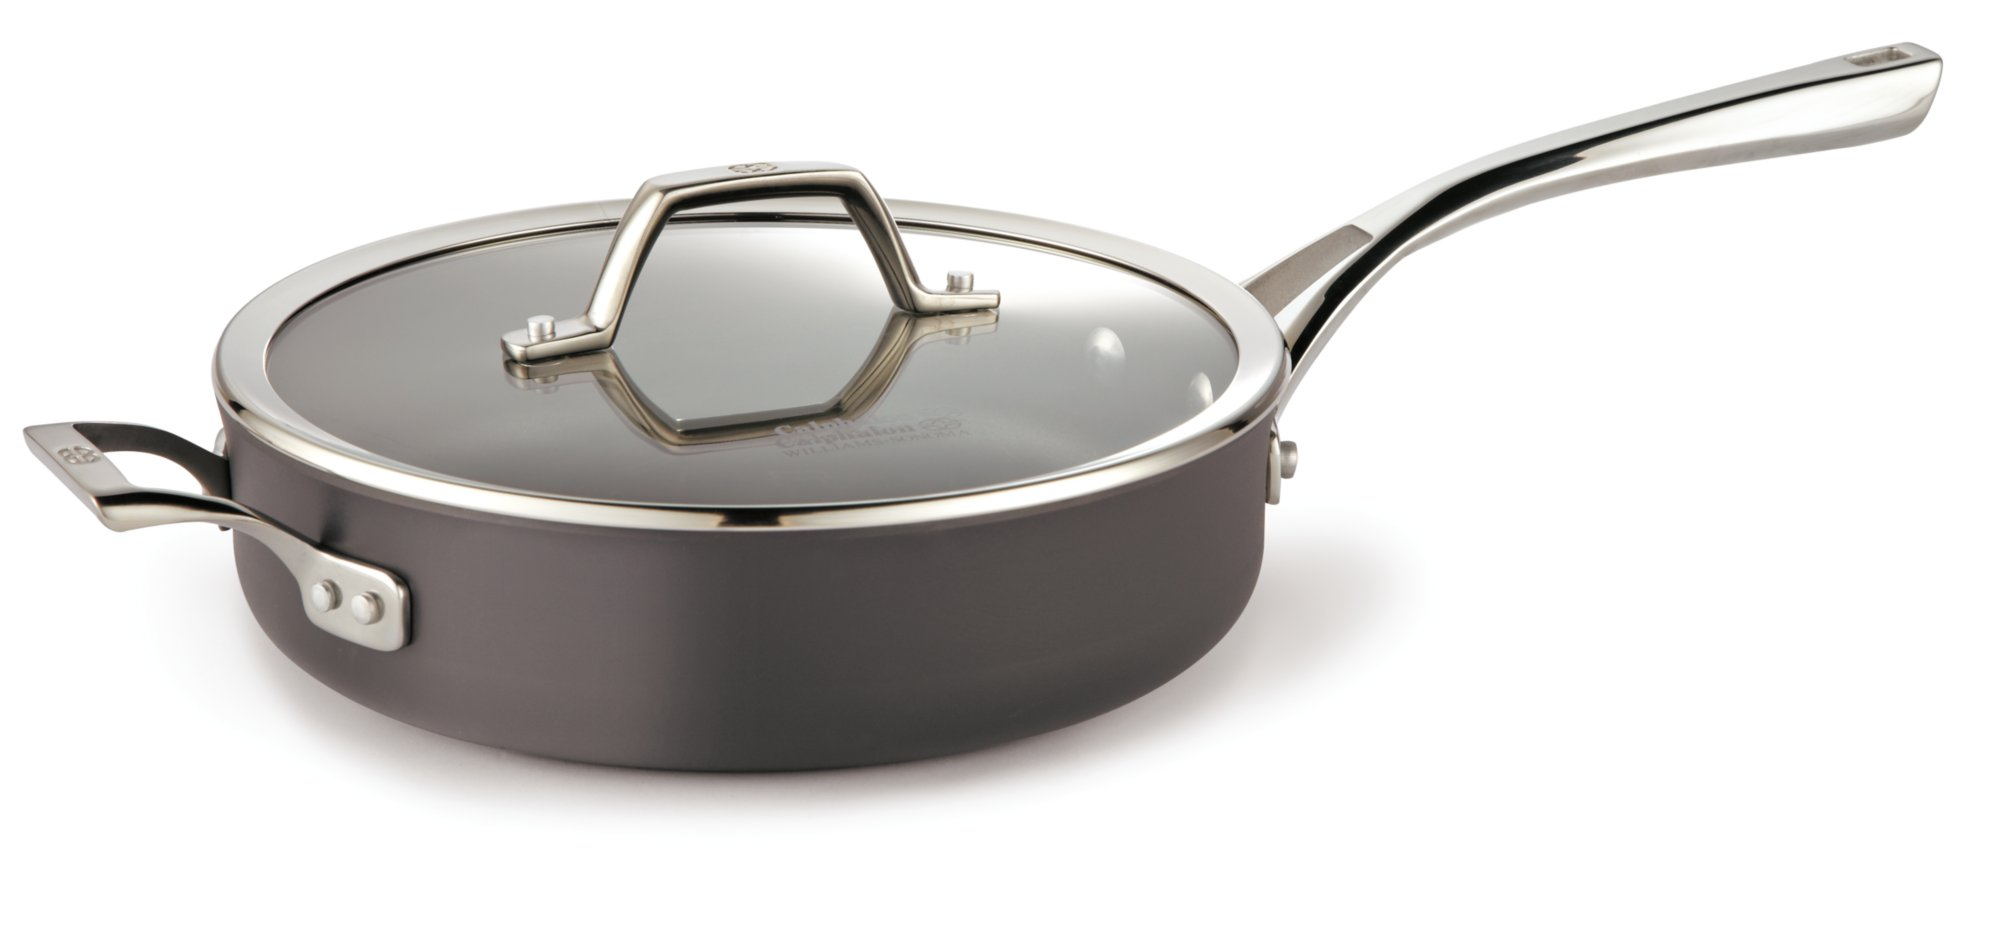 Calphalon Williams-Sonoma Elite Nonstick 3-qt. Saute Pan with Cover